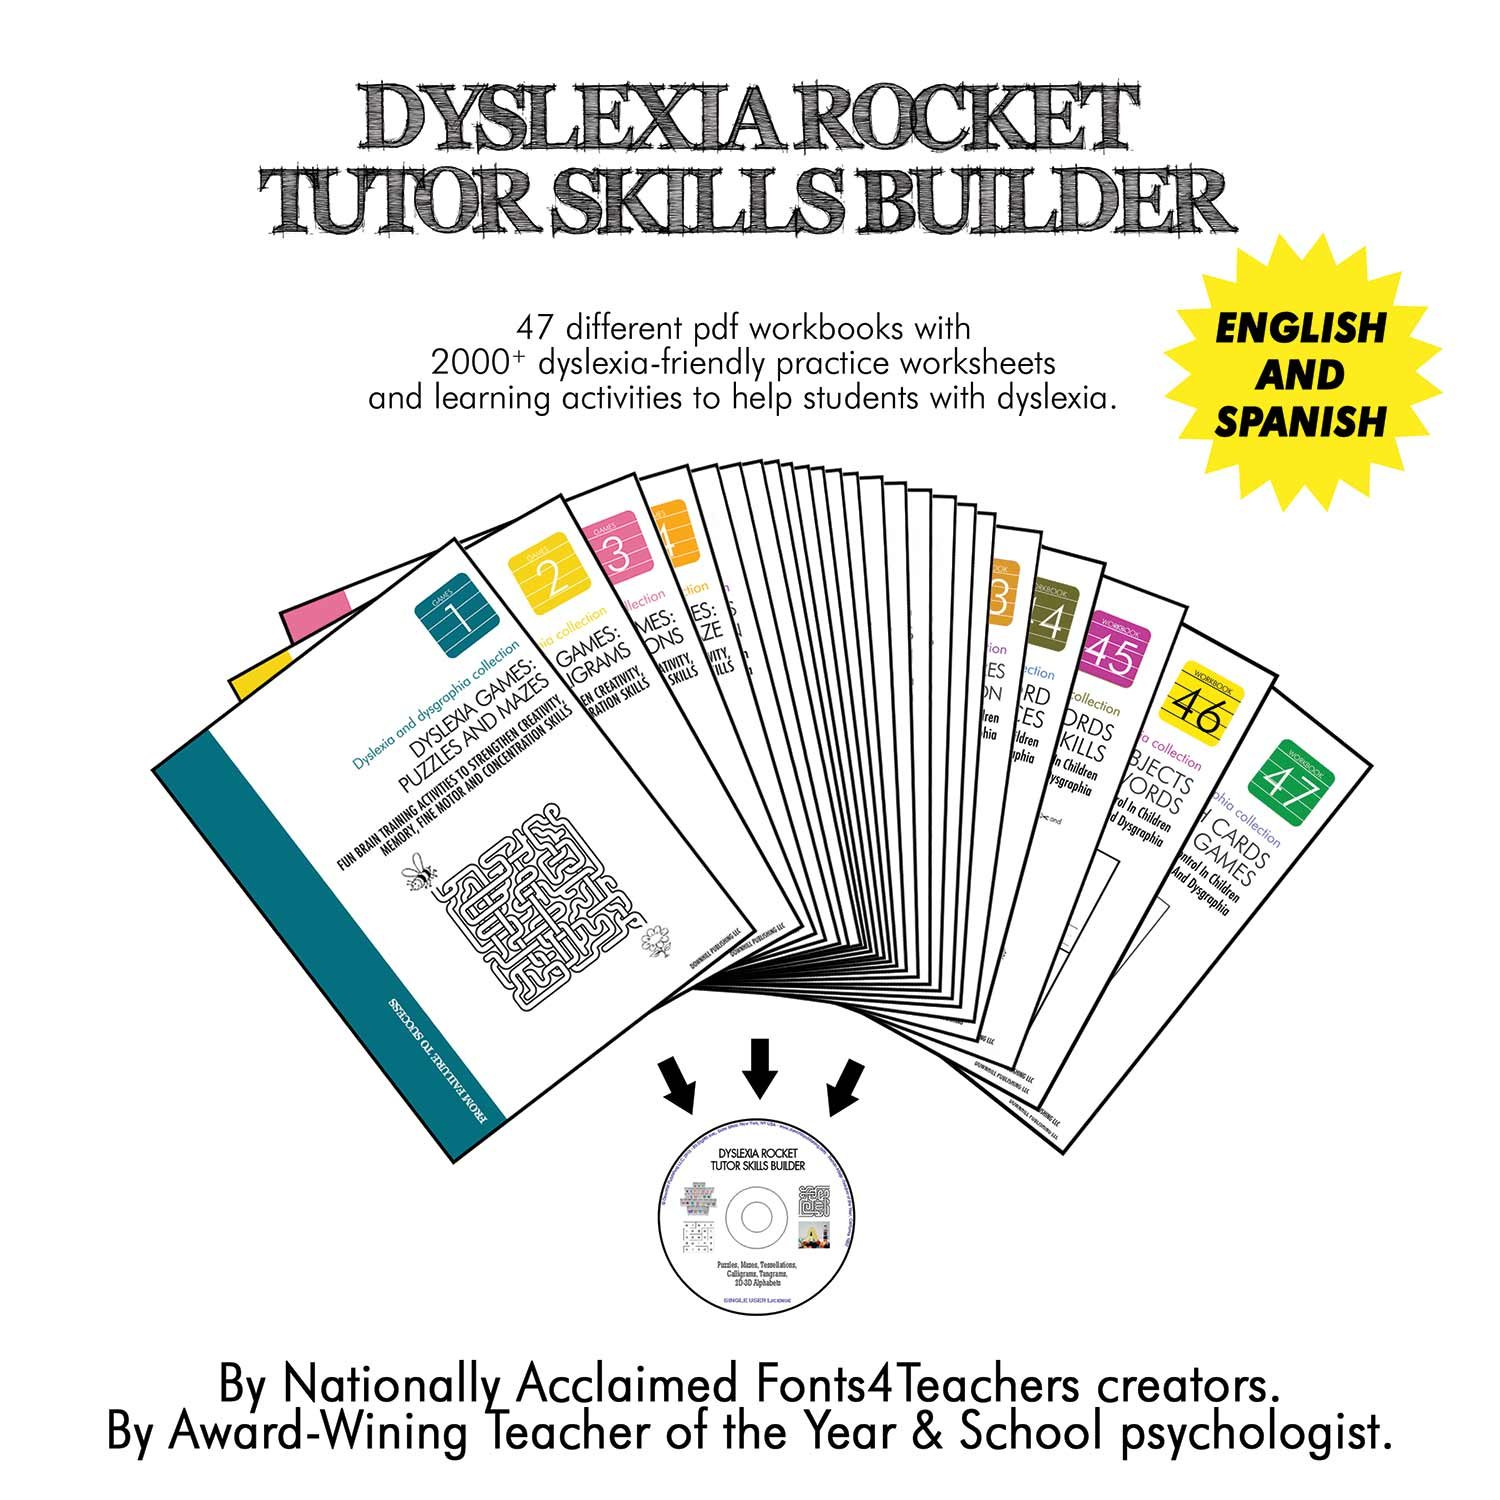 Dyslexia Rocket Tutor Skills Builder CD-ROM | Dyslexia Games | 47 Printable Workbooks | +2000 Practice Worksheets | For Kids from 4 to 10 Years.